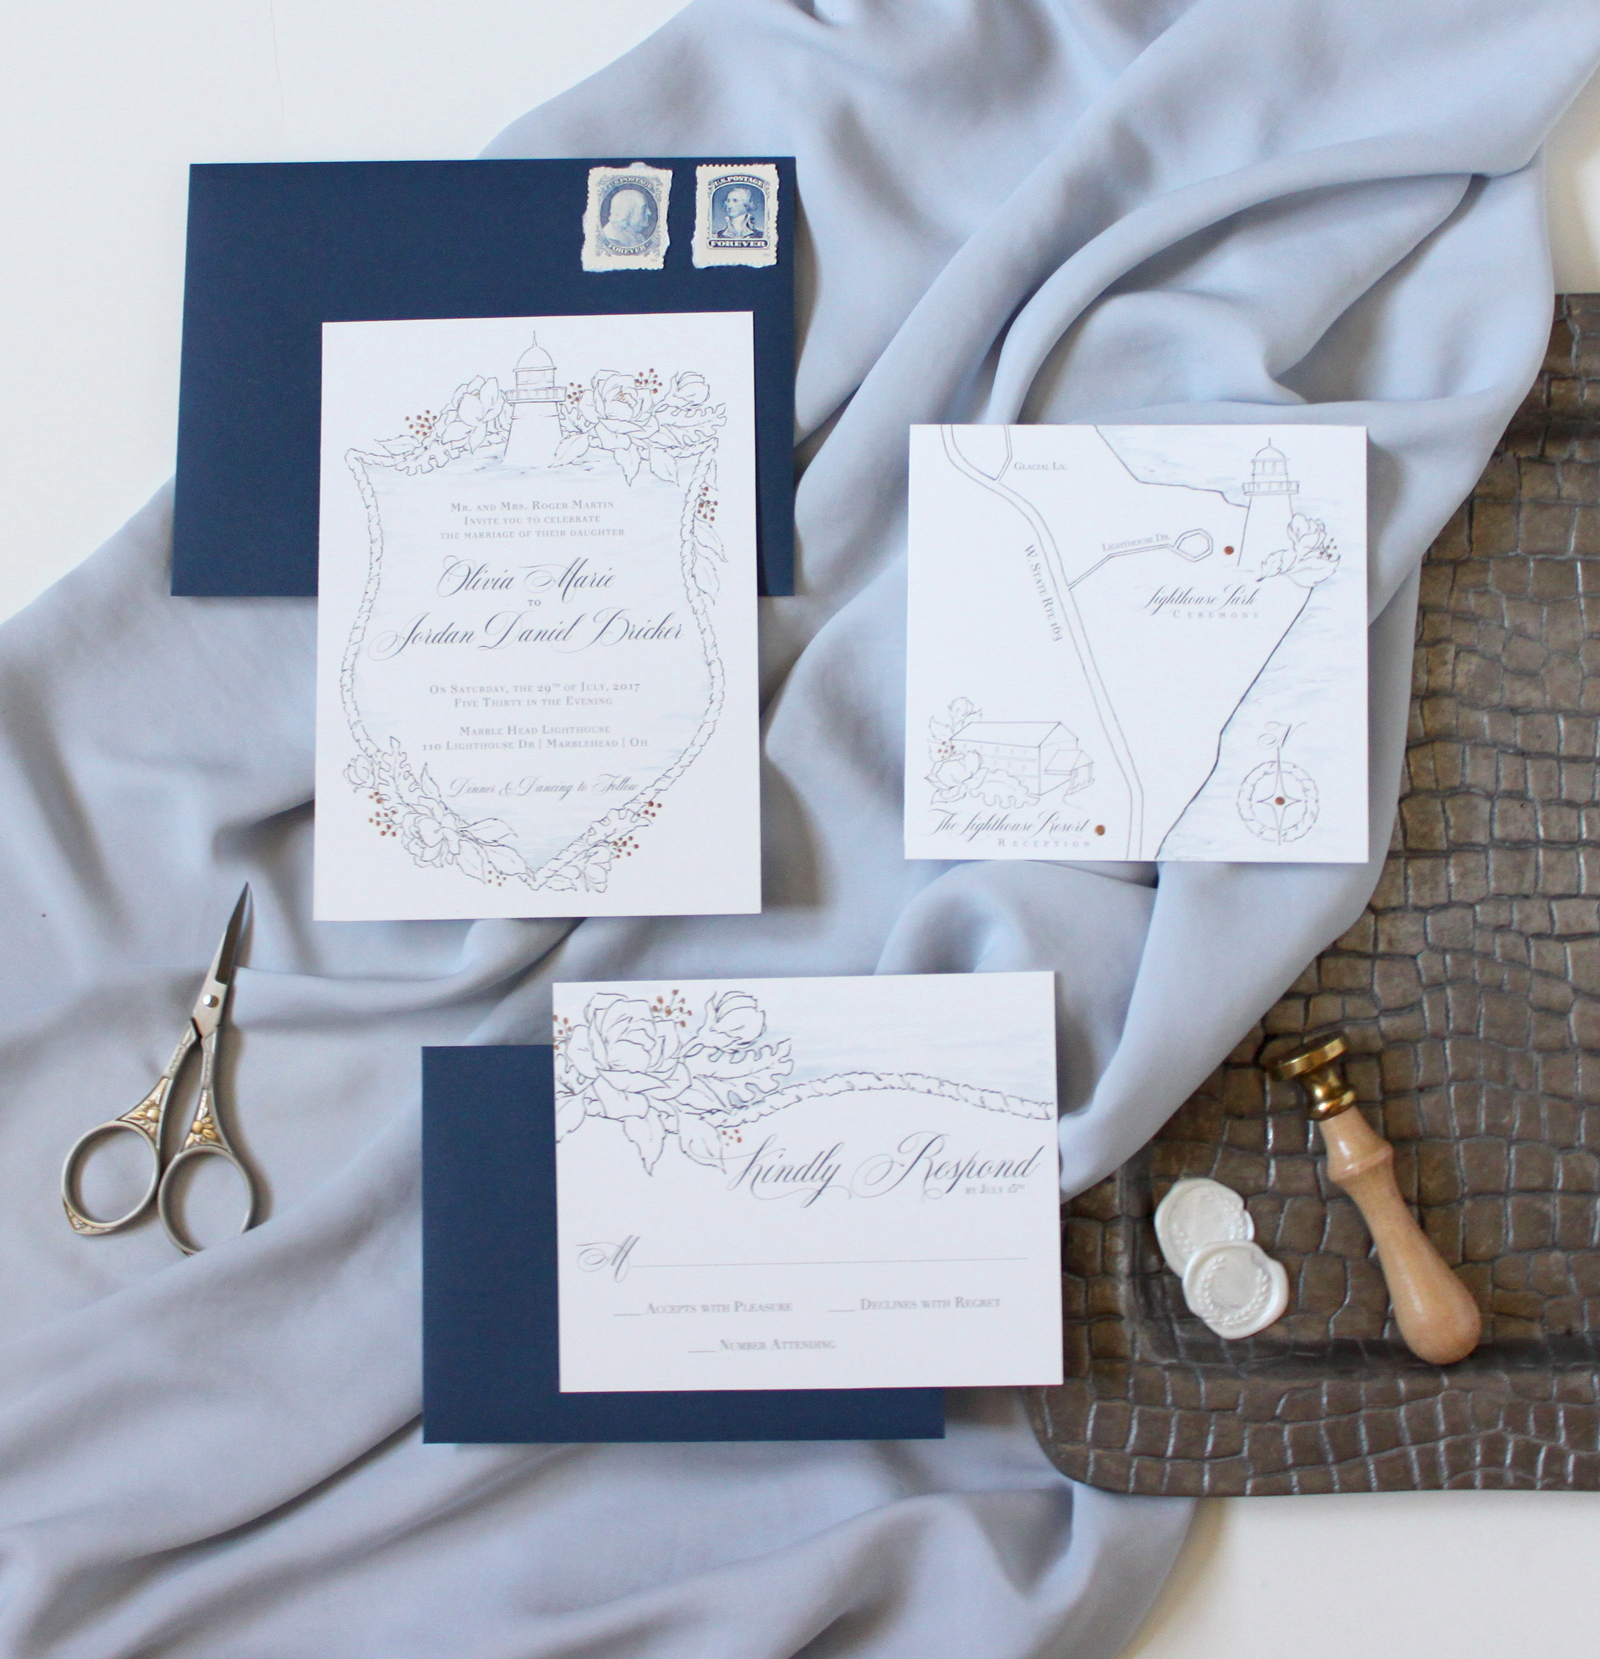 Nautical Wedding Invitations.  Crest inspired wedding invitations with a lighthouse at the top and a seaside map.  Designs by Blushed Design, Wedding Invitations and Fine Art Portraits